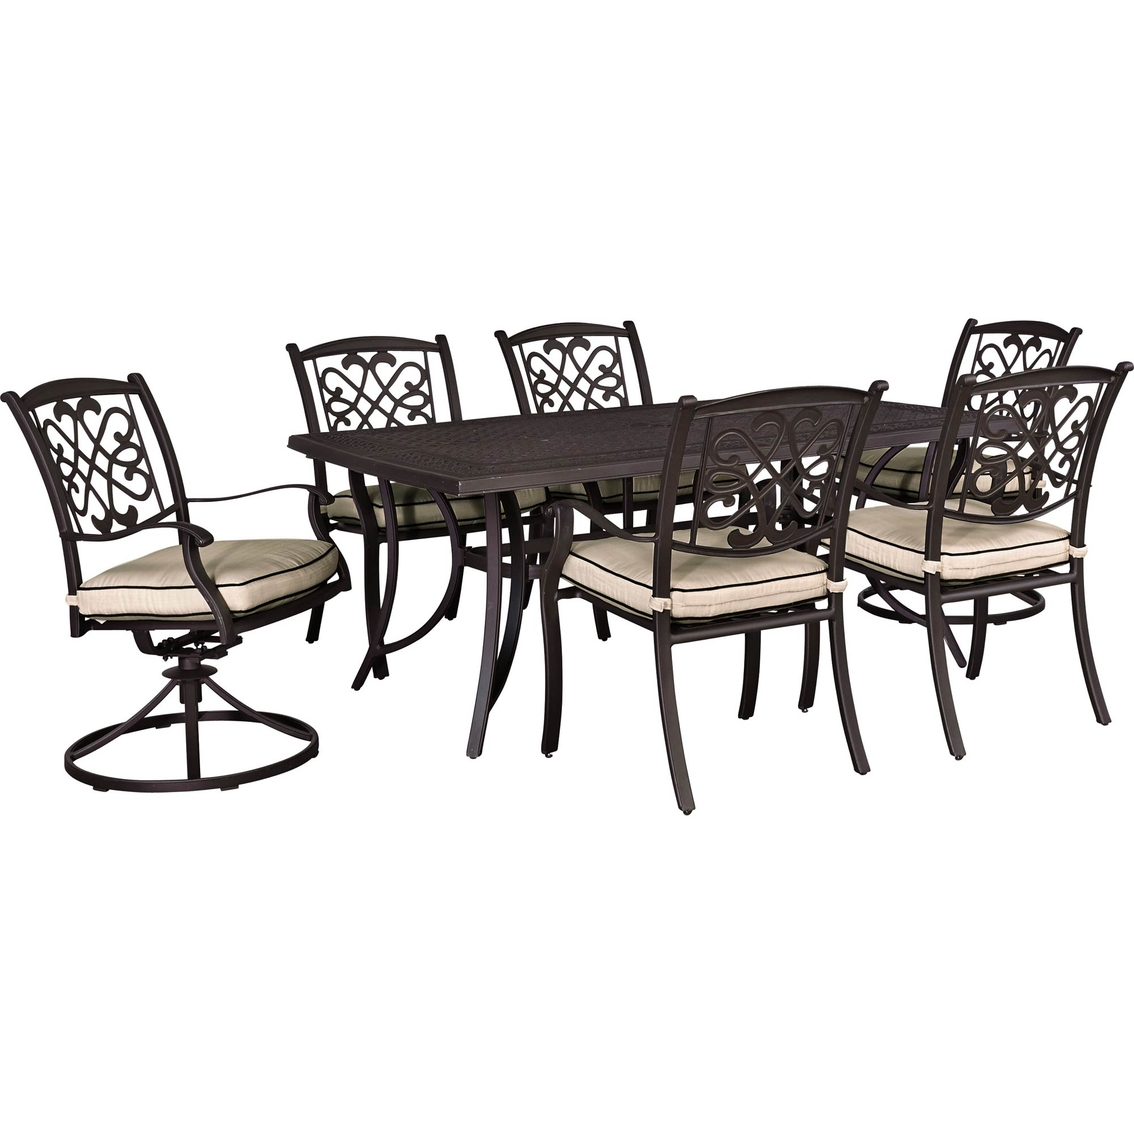 Admirable Ashley Burnella Outdoor Dining Table With Four Dining Chairs Evergreenethics Interior Chair Design Evergreenethicsorg